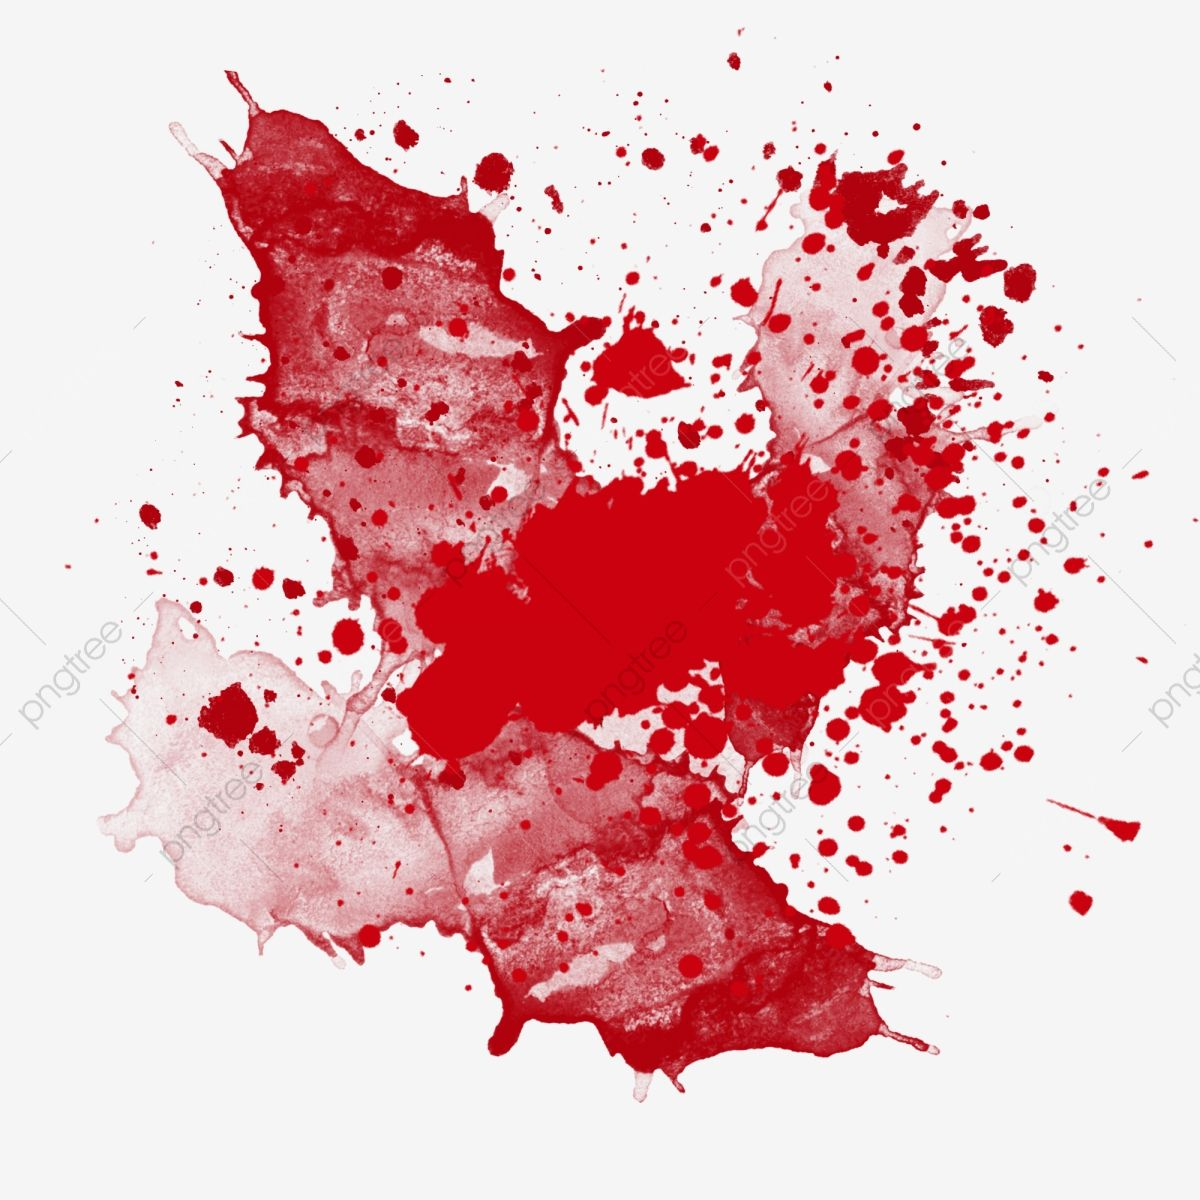 Watercolor Red Bloodstain Splashing Ink Abstract Decoration Bloodstain Png Transparent Clipart Image And Psd File For Free Download Watercolor Red Watercolor Splash Abstract